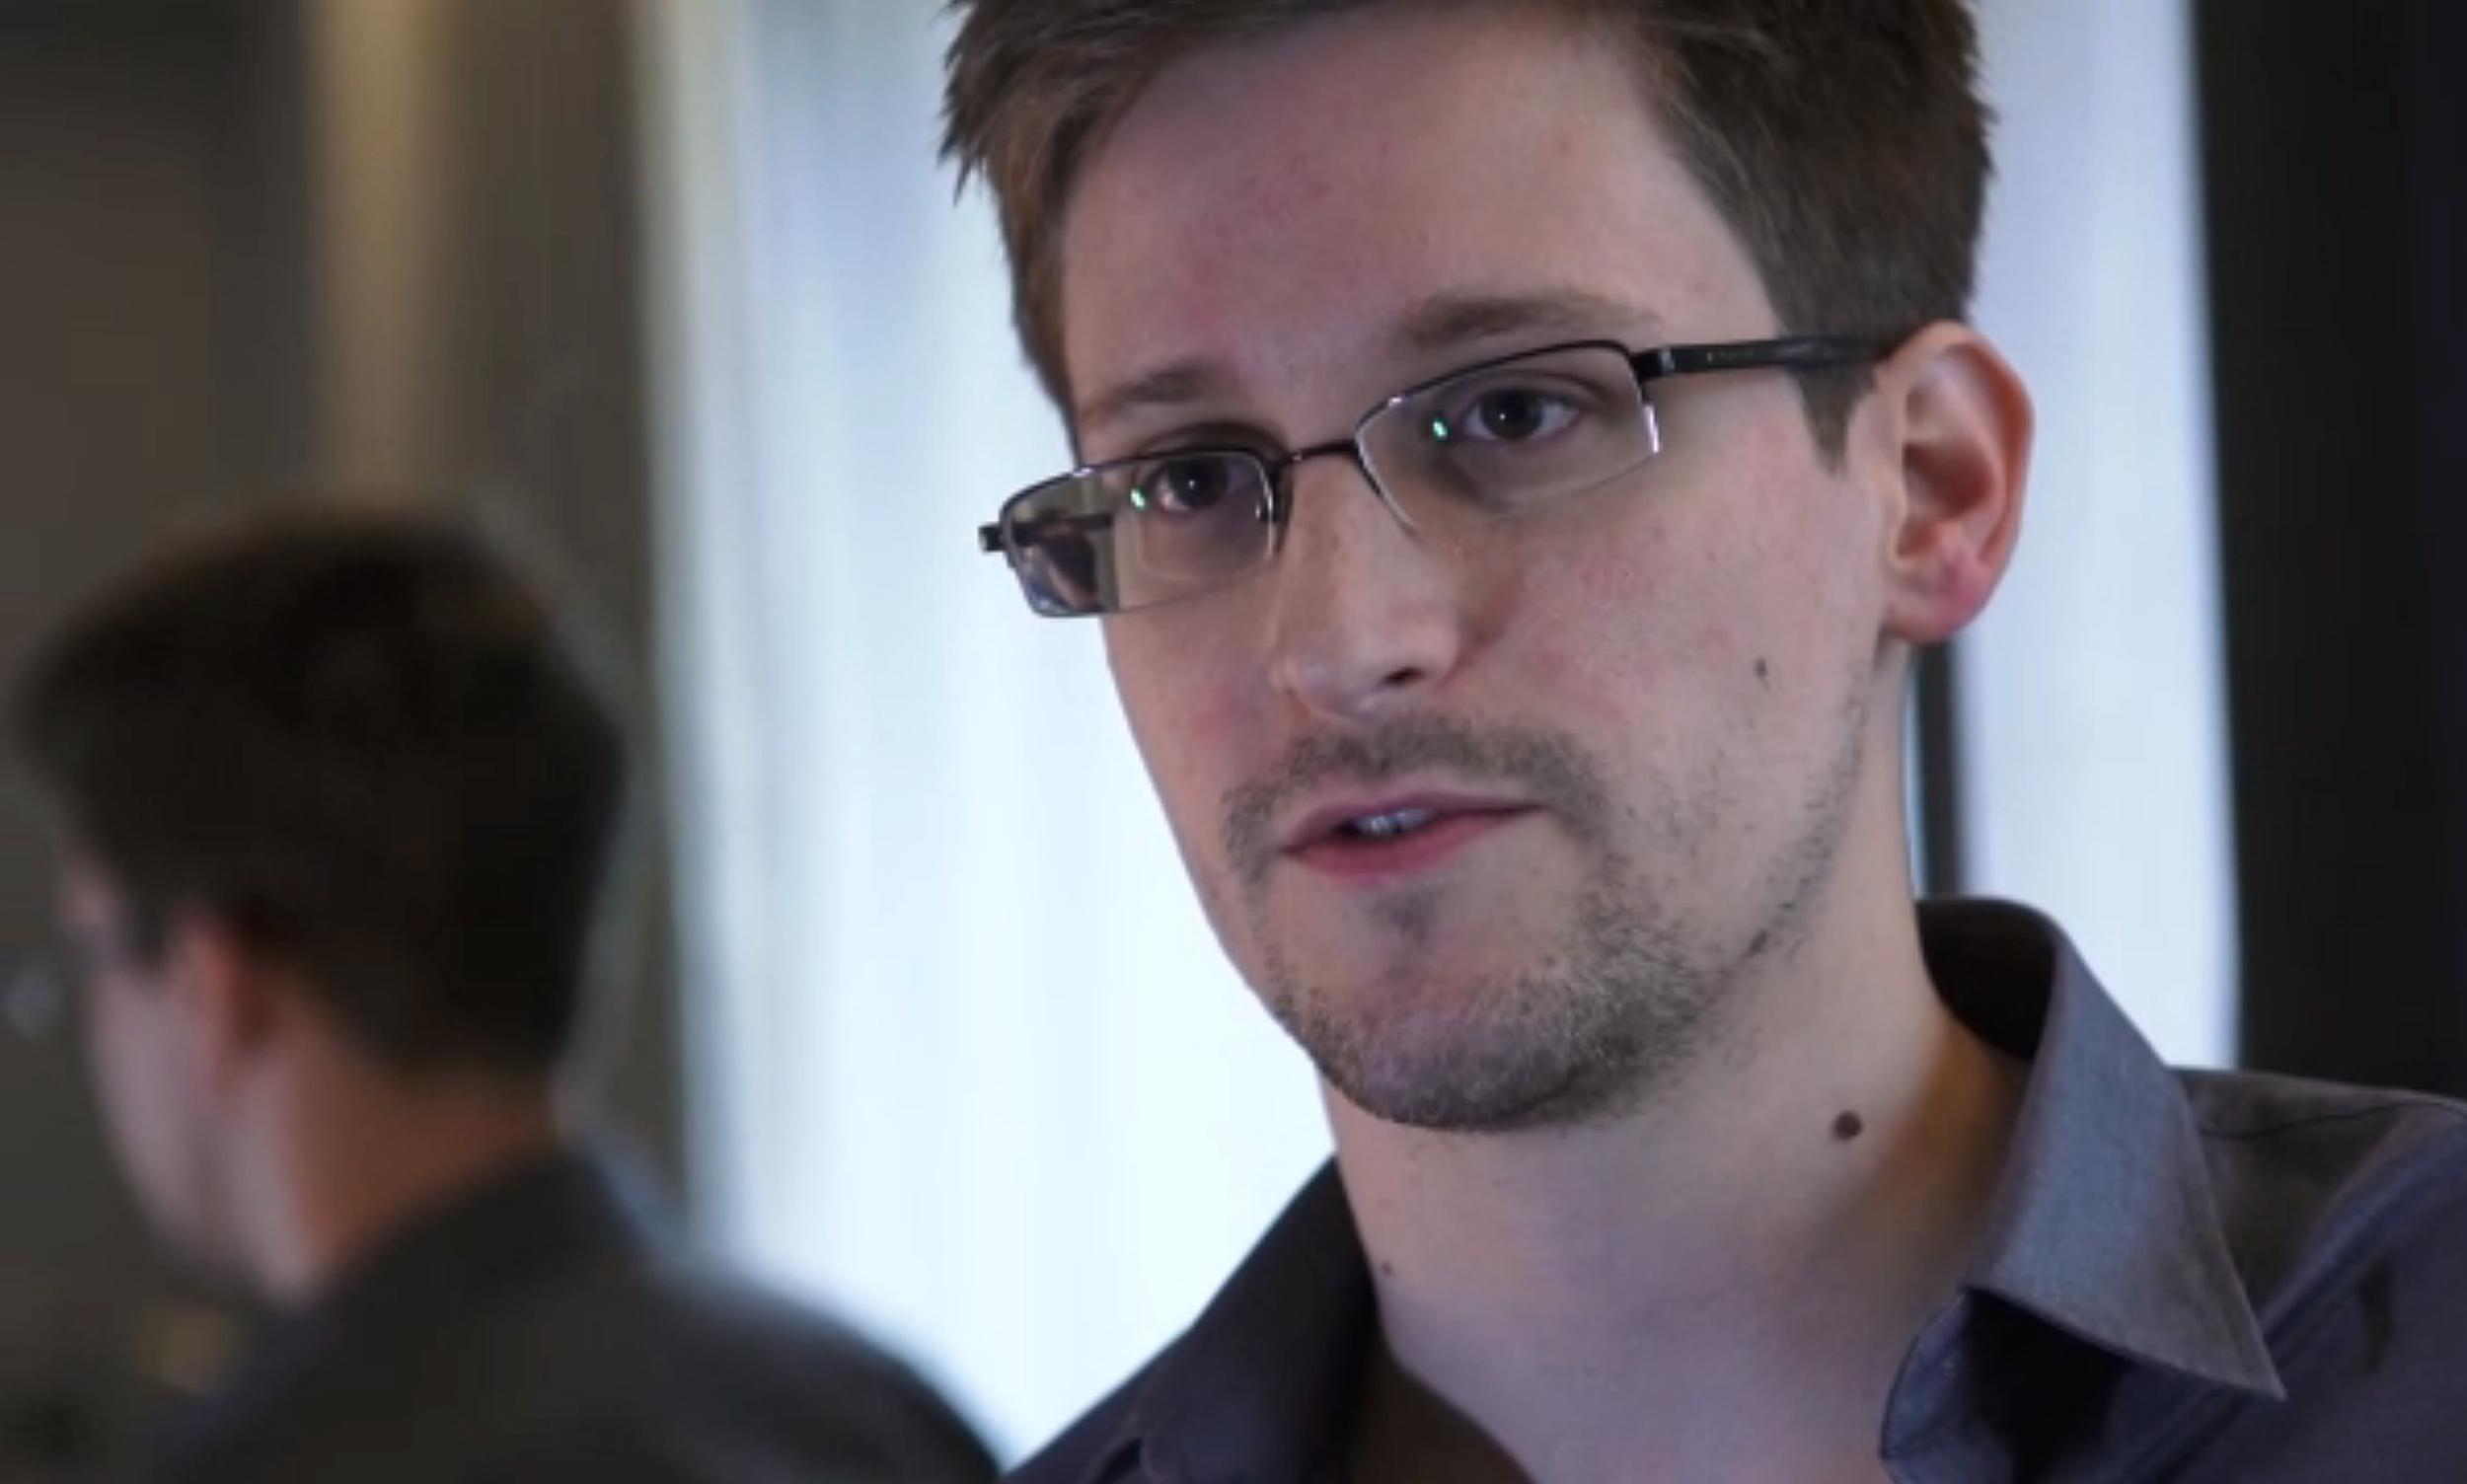 Edward Snowden, the fugitive US intelligence agent, was granted political asylum by Russia after he flew in from Hong Kong in June 2013 (AFP Photo/The Guardian)